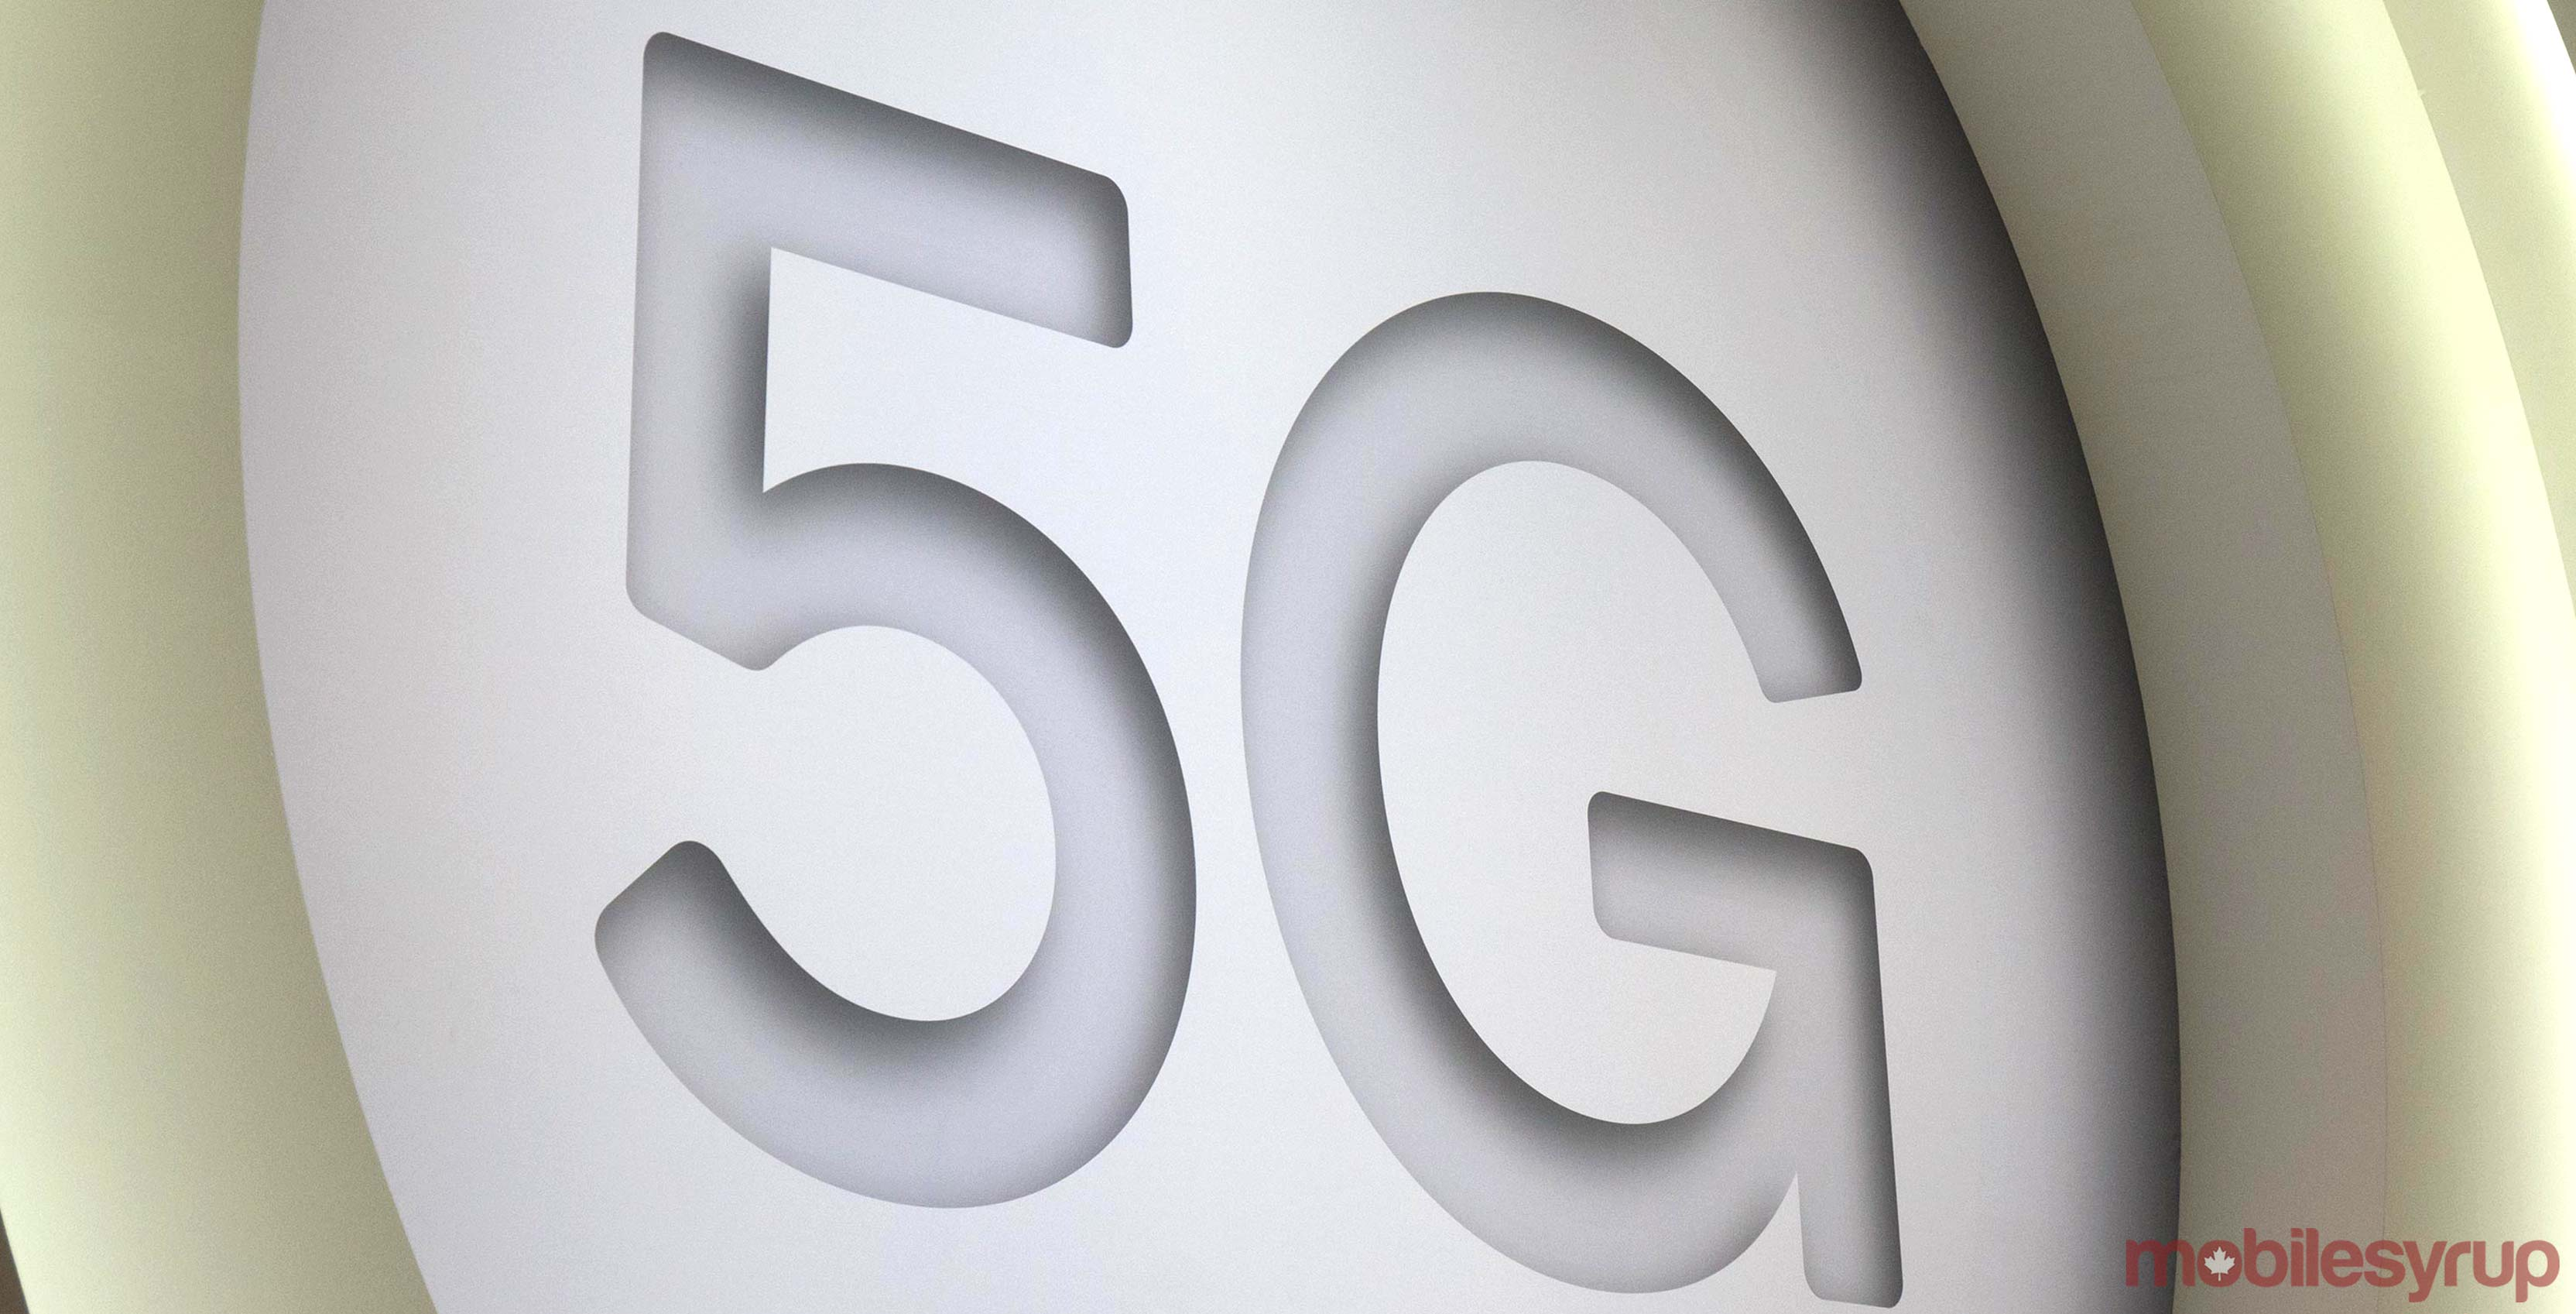 No, Qualcomm doesn't expect 5G phones to arrive in 2018